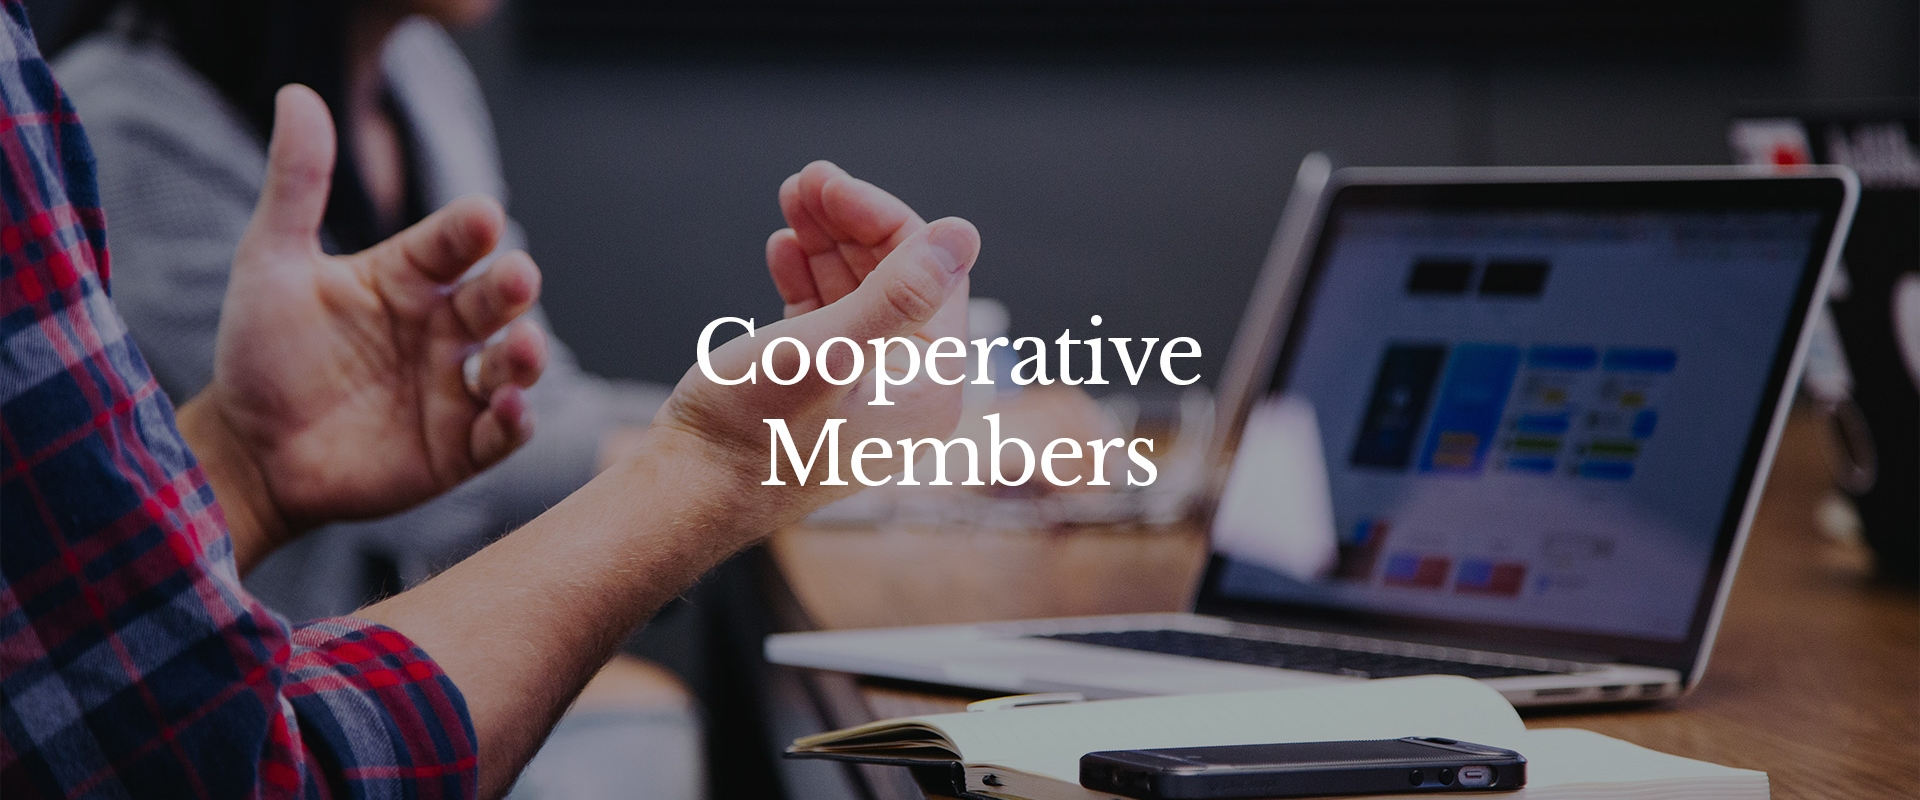 Cooperative Members - Hero Image